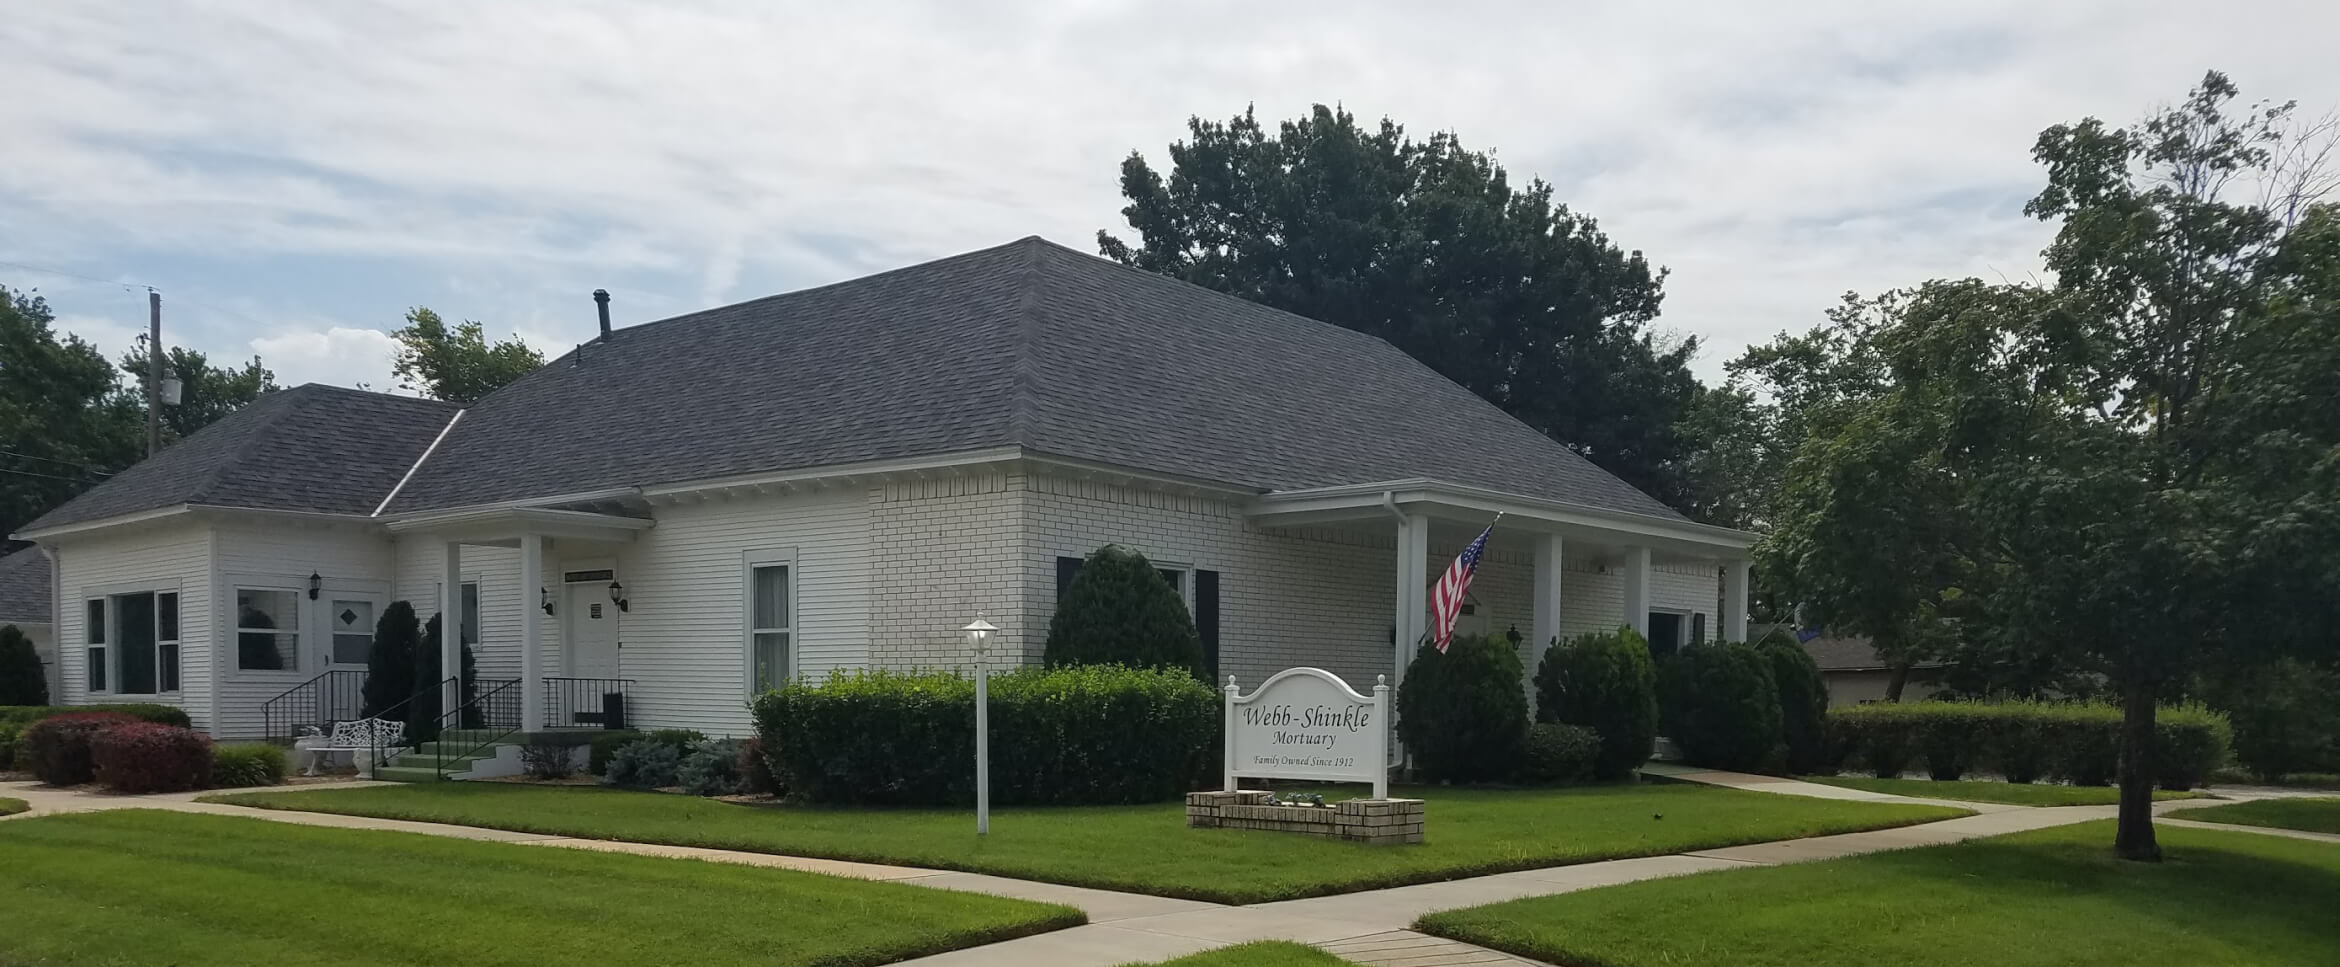 Webb-Shinkle Mortuary | Funeral Home and Cremation